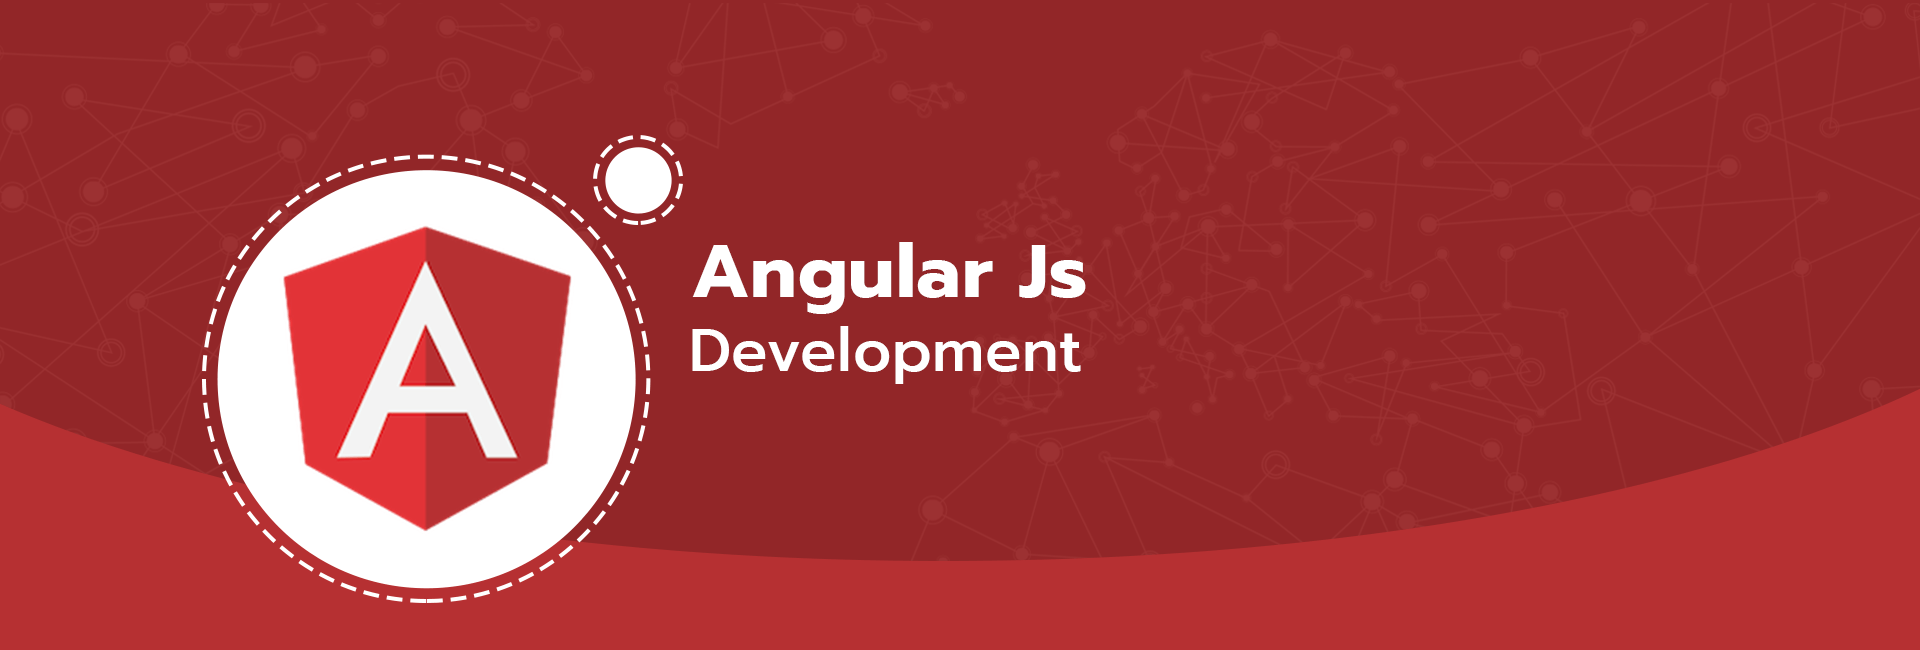 choose AngularJS development